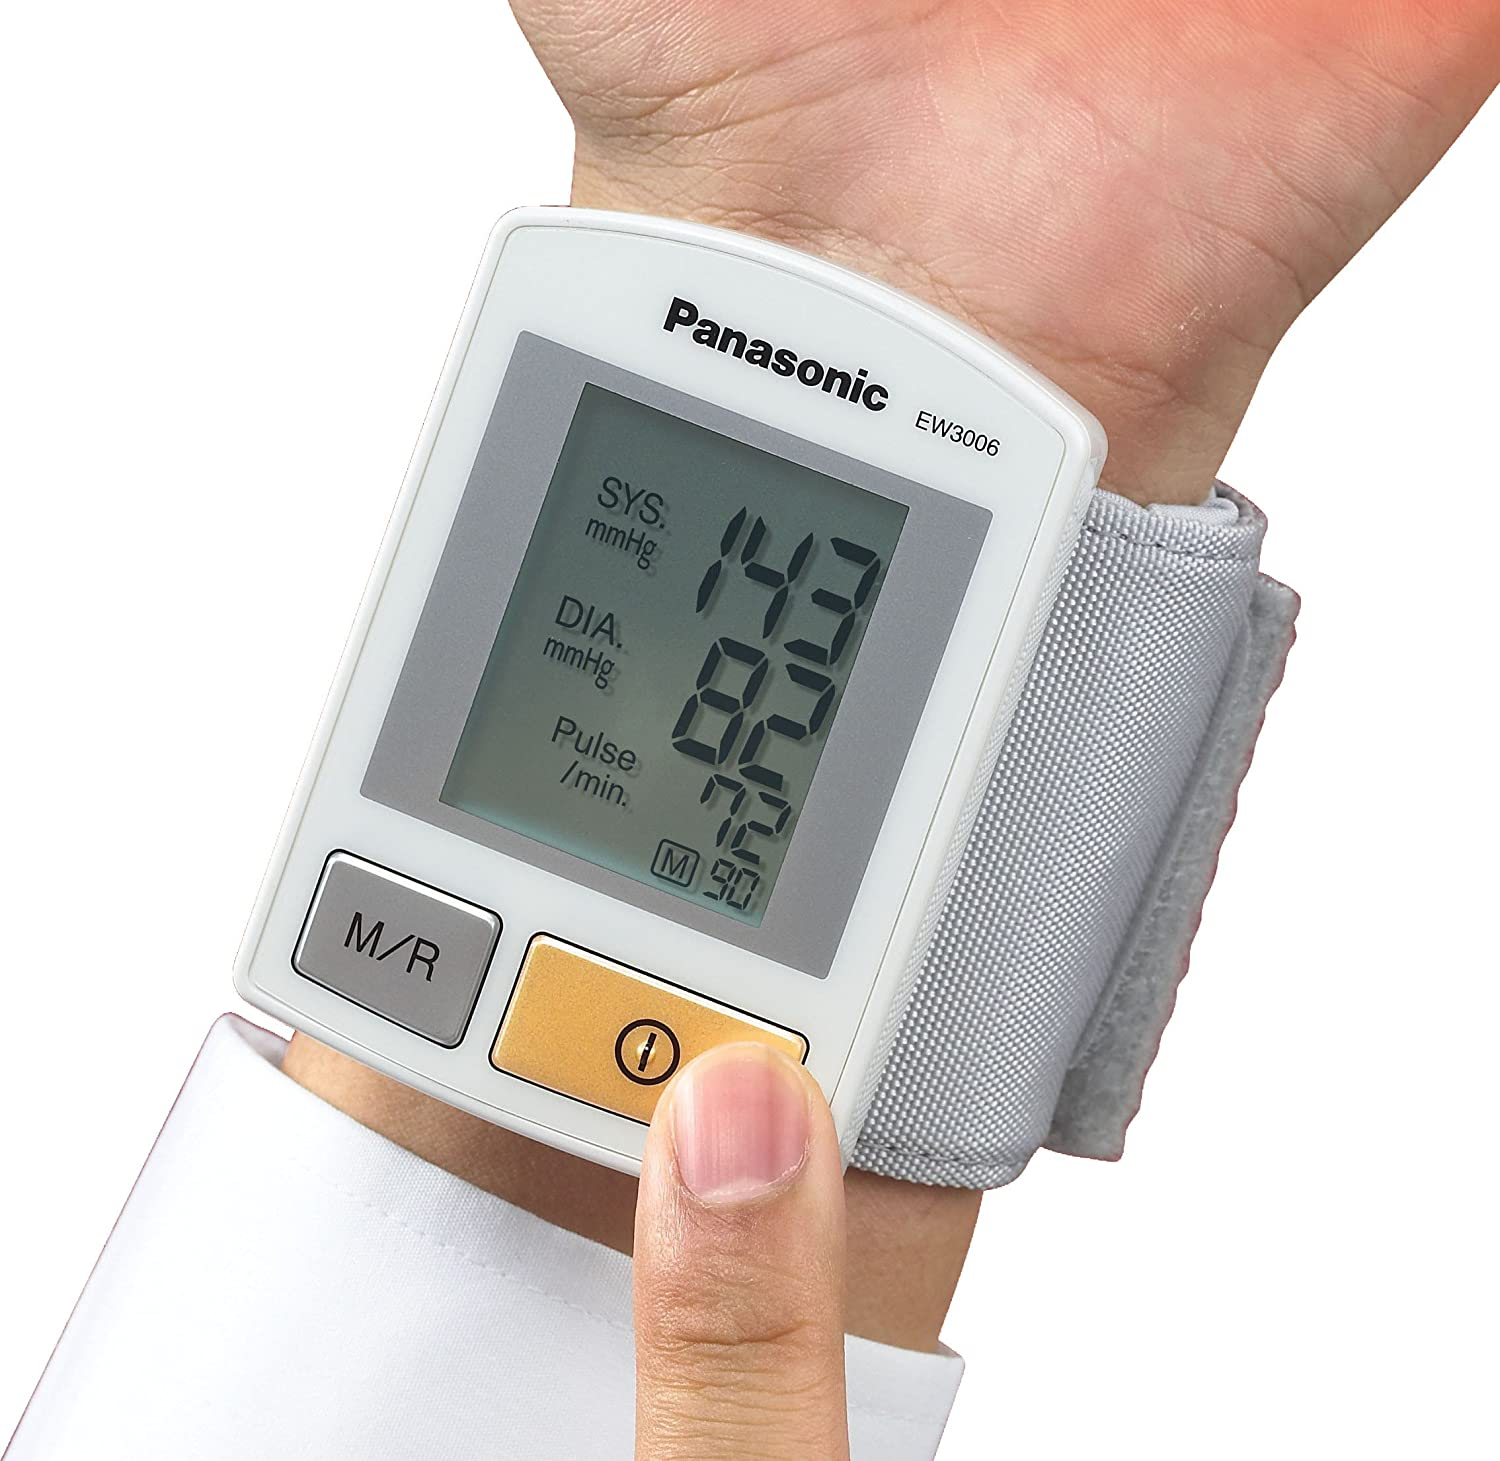 Amazon.com: Panasonic EW3006 Diagnostic Wrist Blood Pressure Monitor: Health & Personal Care